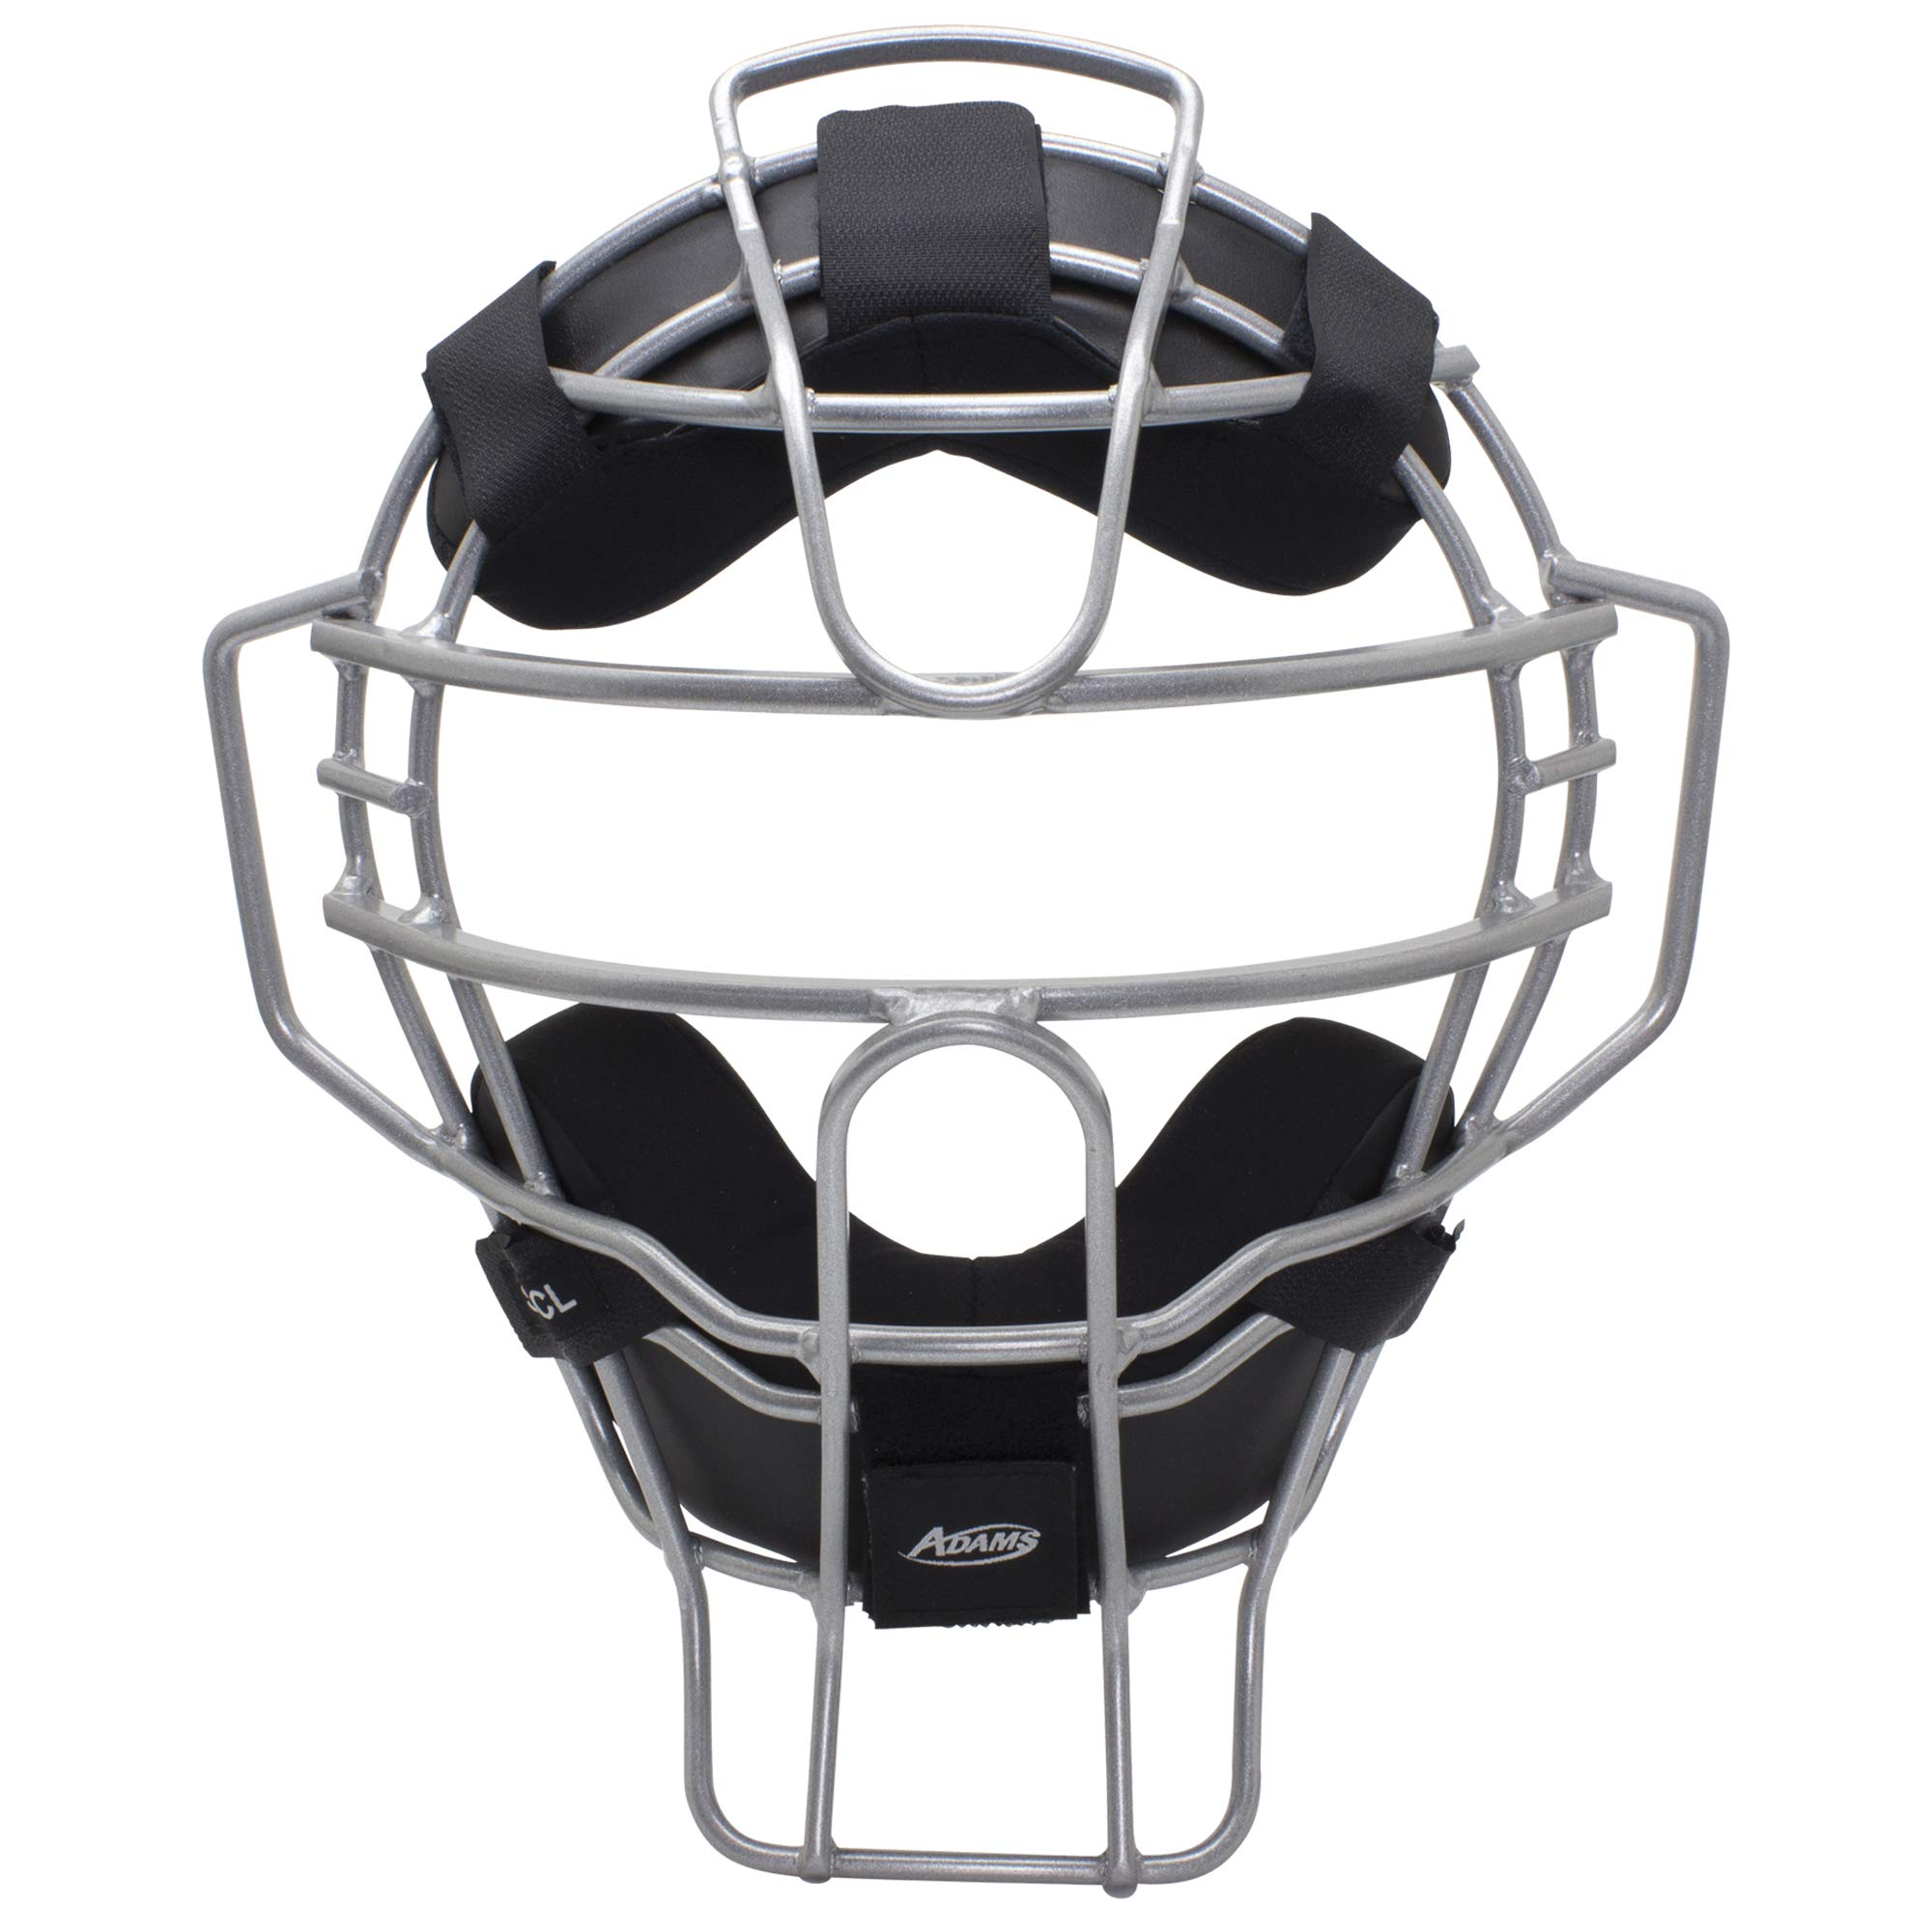 Adams Comfort-Lite Baseball and Softball Umpire and Catcher's Mask, Silver by Adams